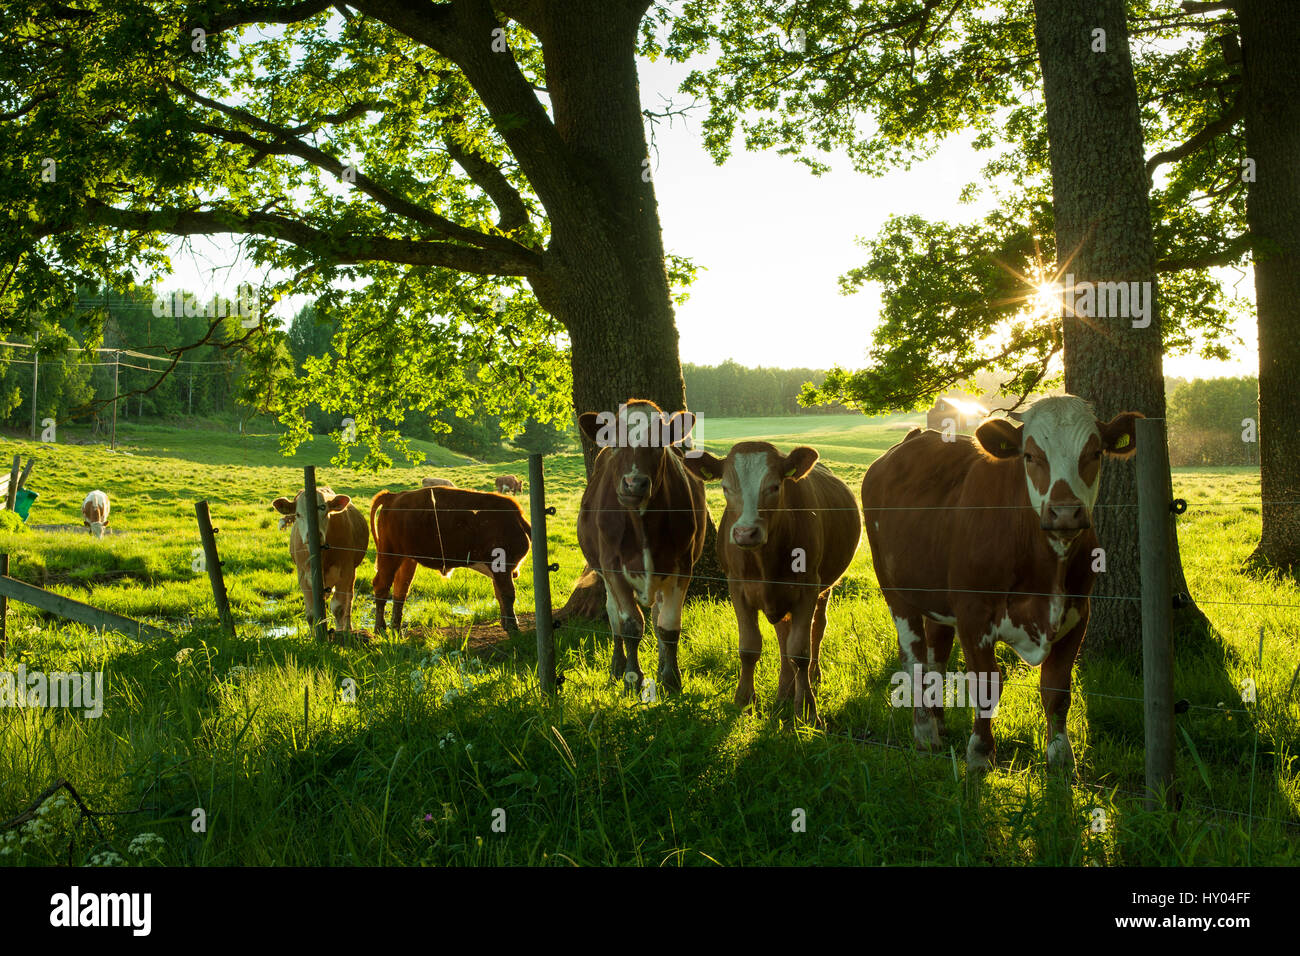 sweden scandinavia beautiful nature and landscape photo of cows